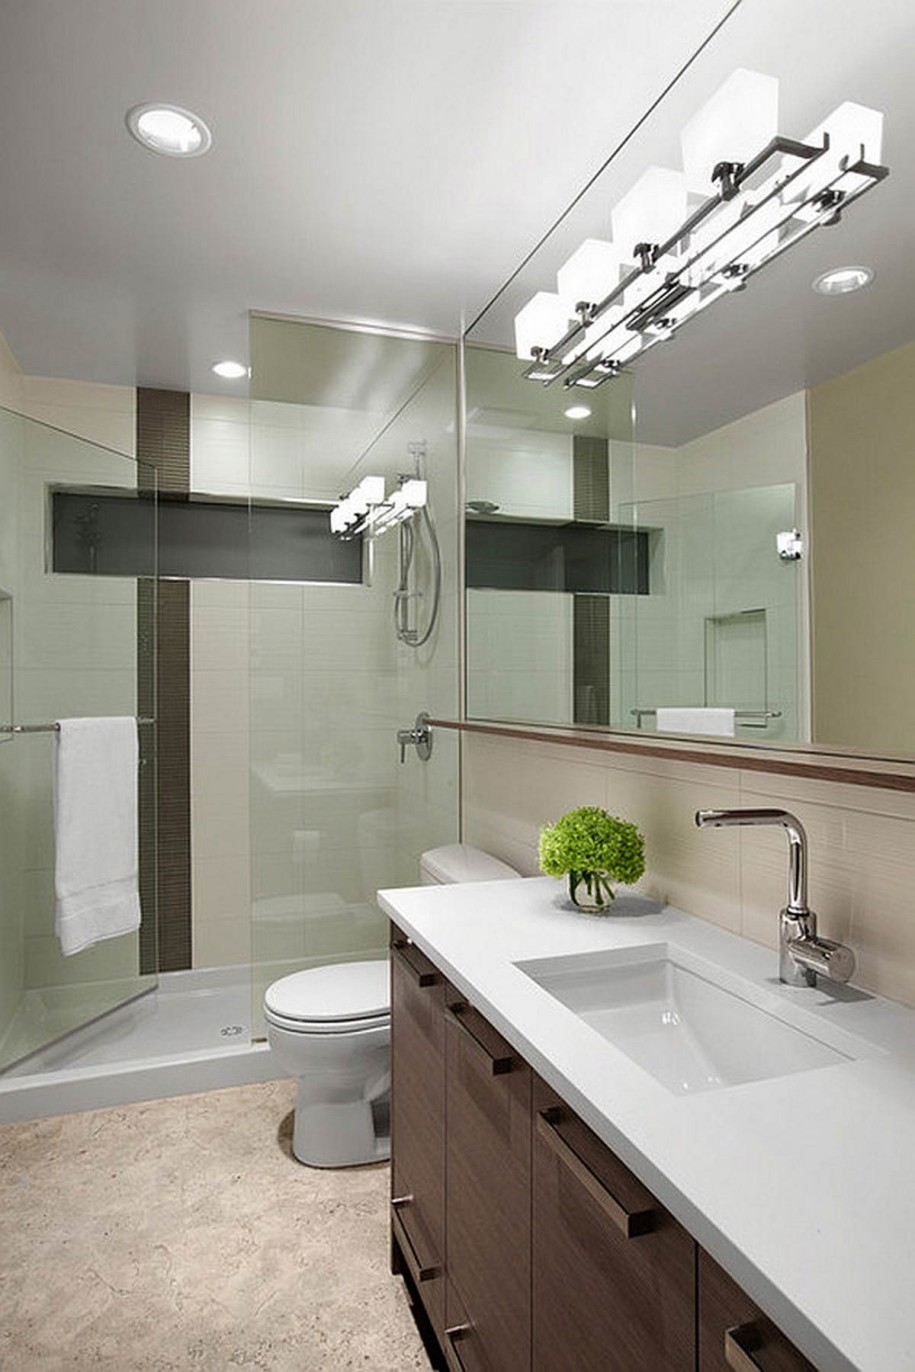 32 good ideas and pictures of modern bathroom tiles texture for Bathroom lighting design tips